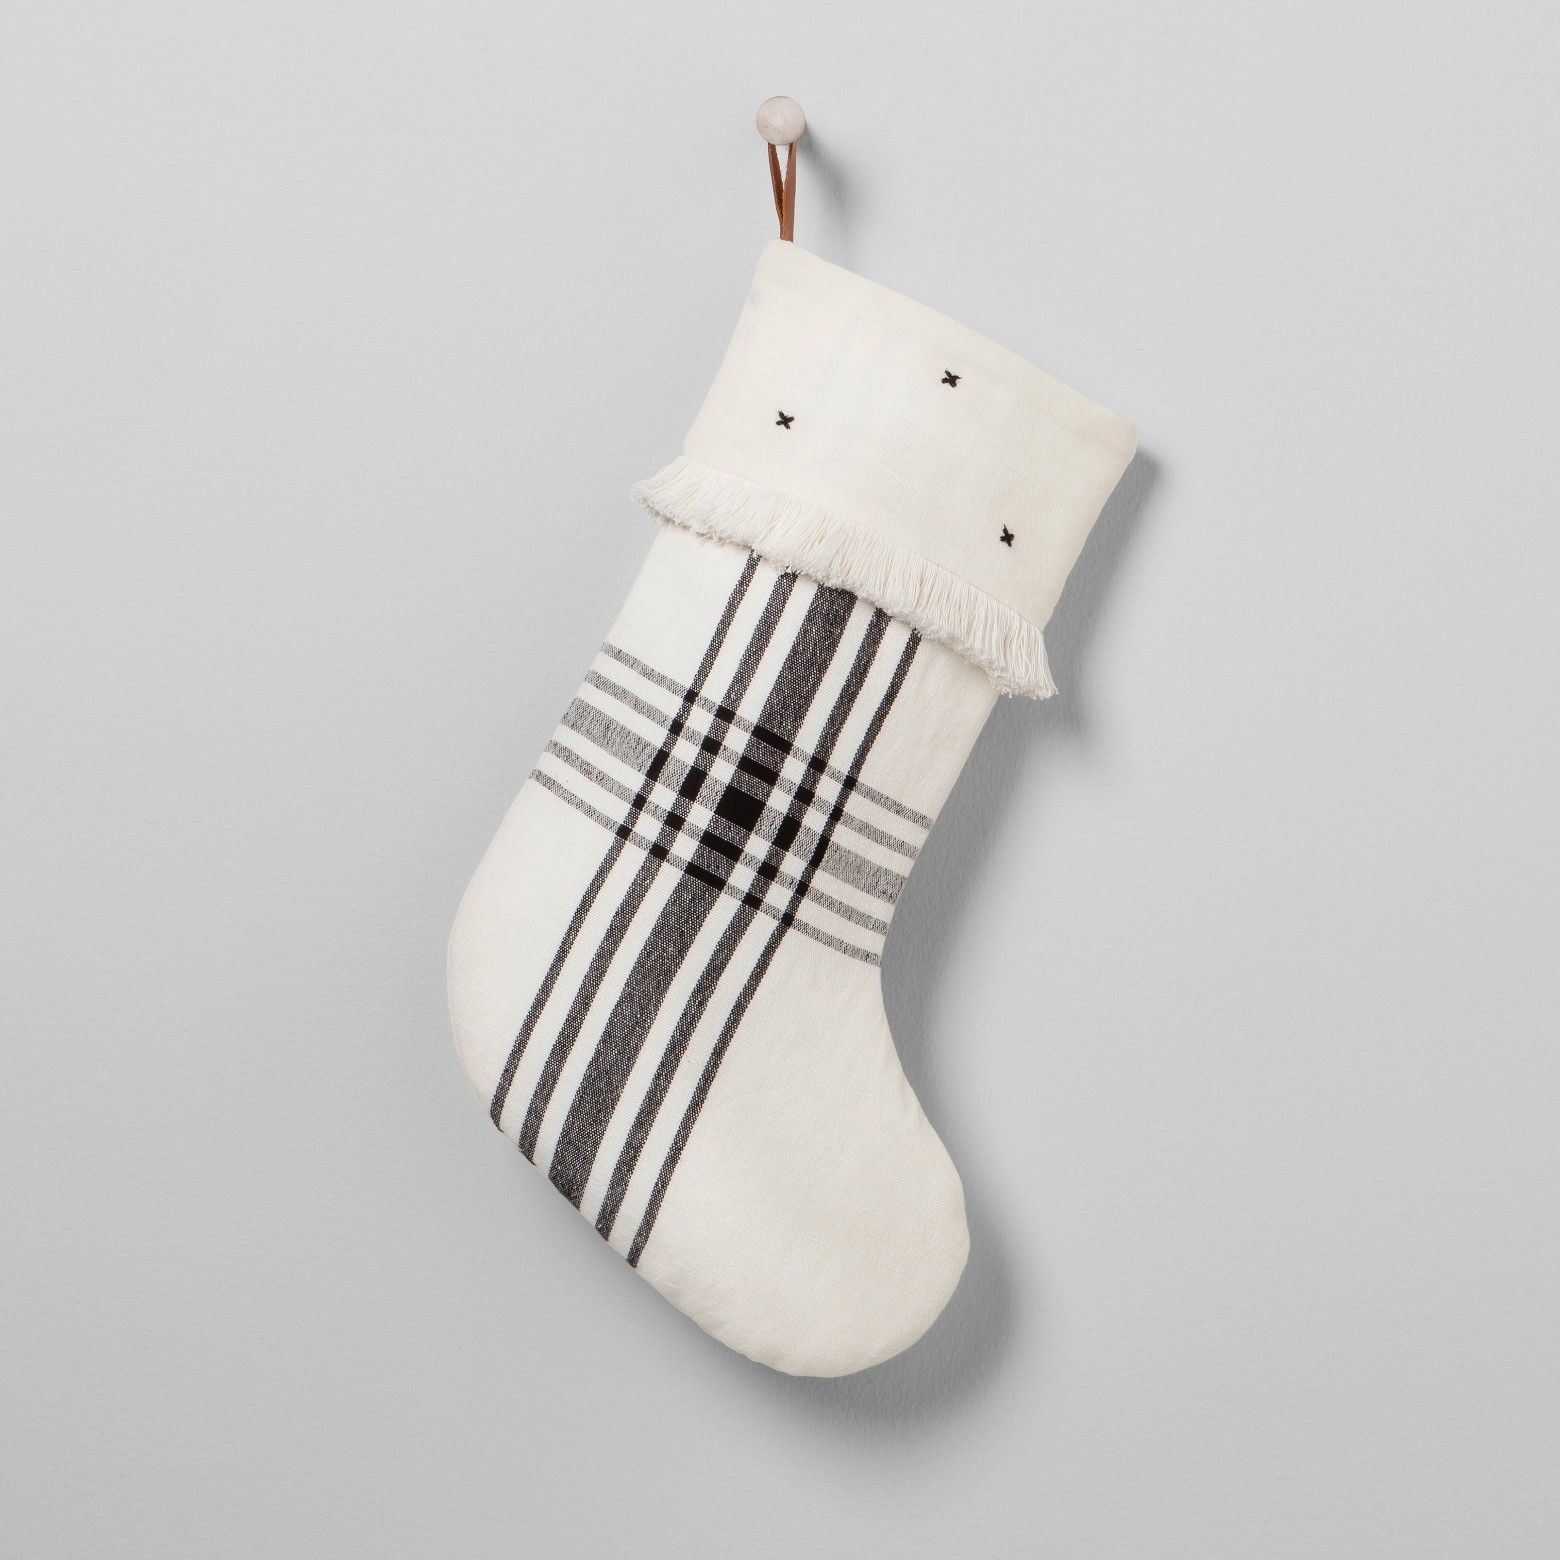 Plaid Holiday Stocking White/Black Hearth & Hand with